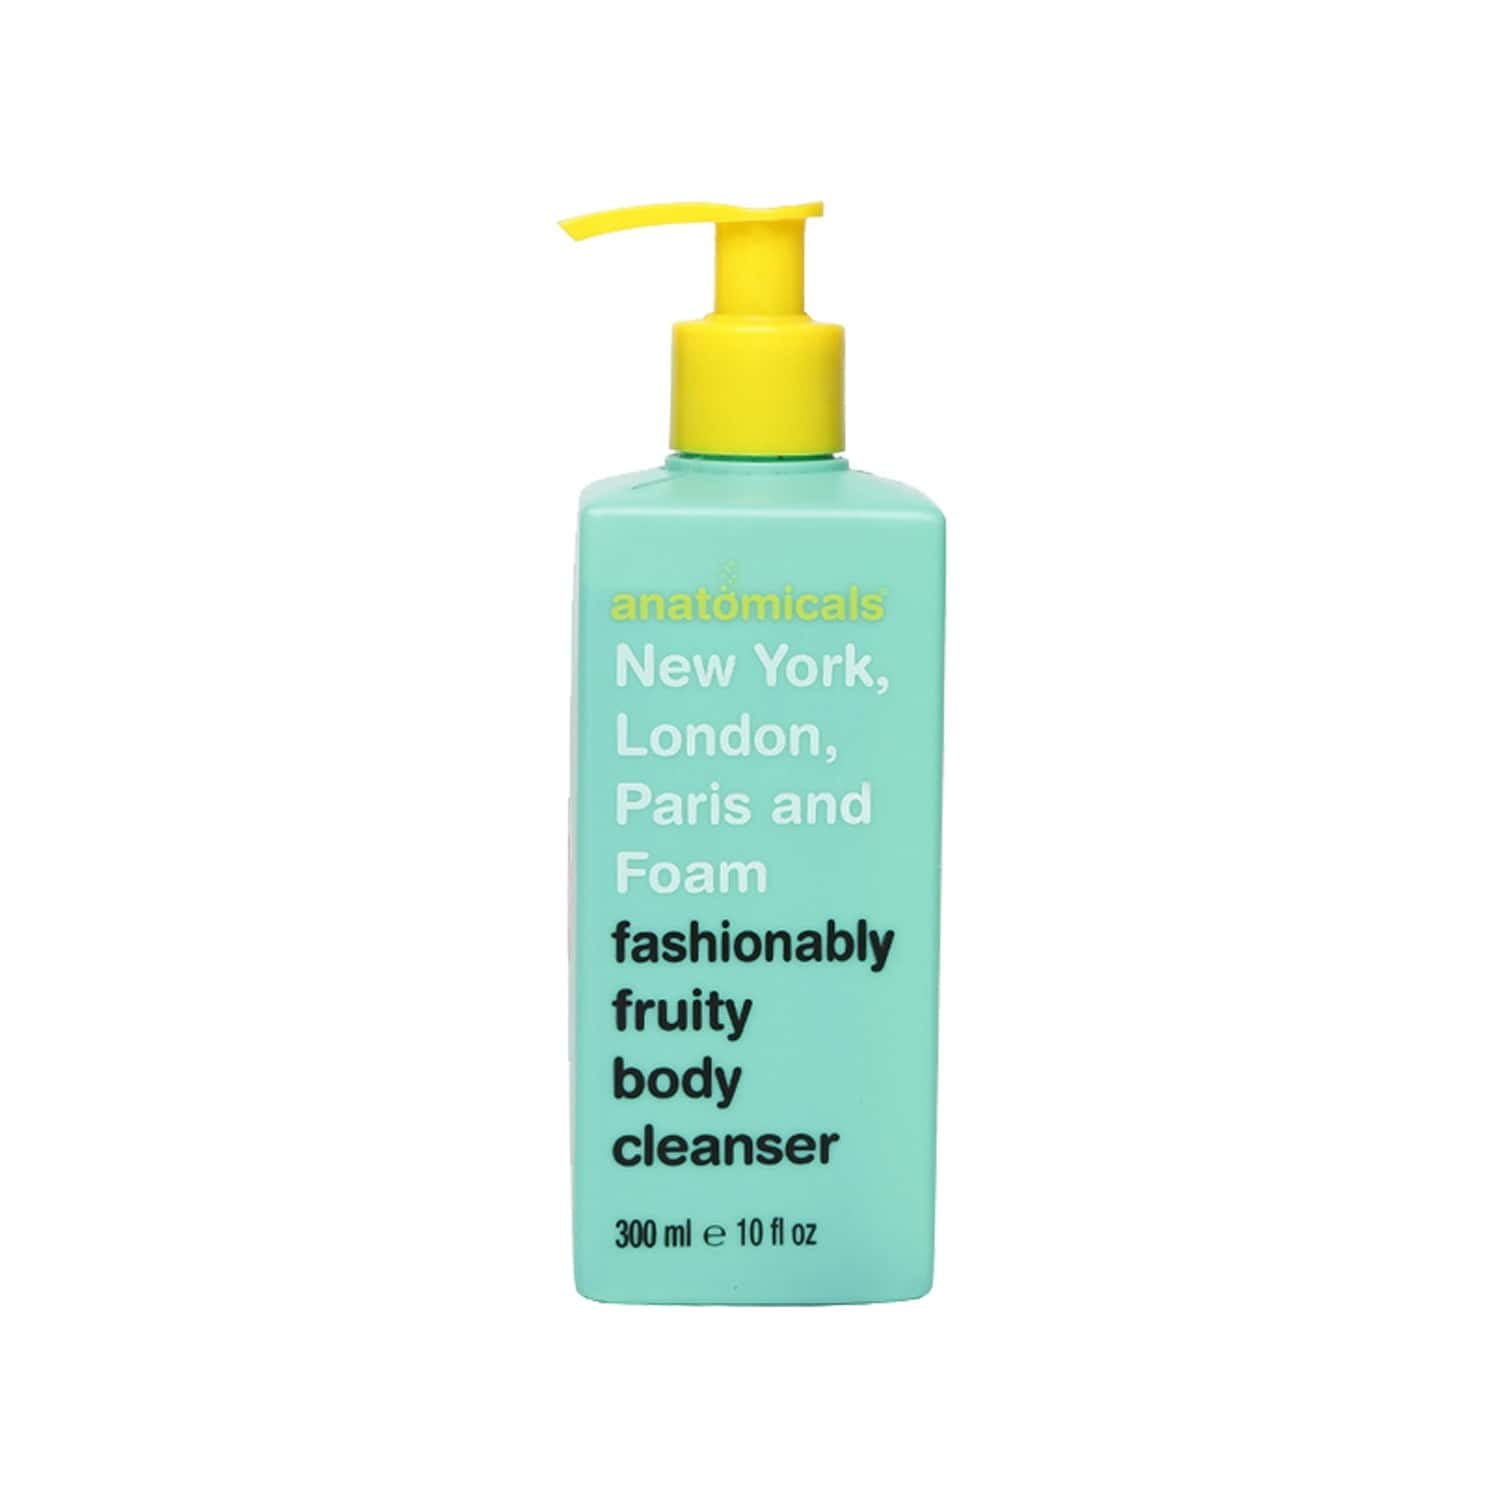 Anatomicals Fashionably Fruity Body Cleanser 300 Ml